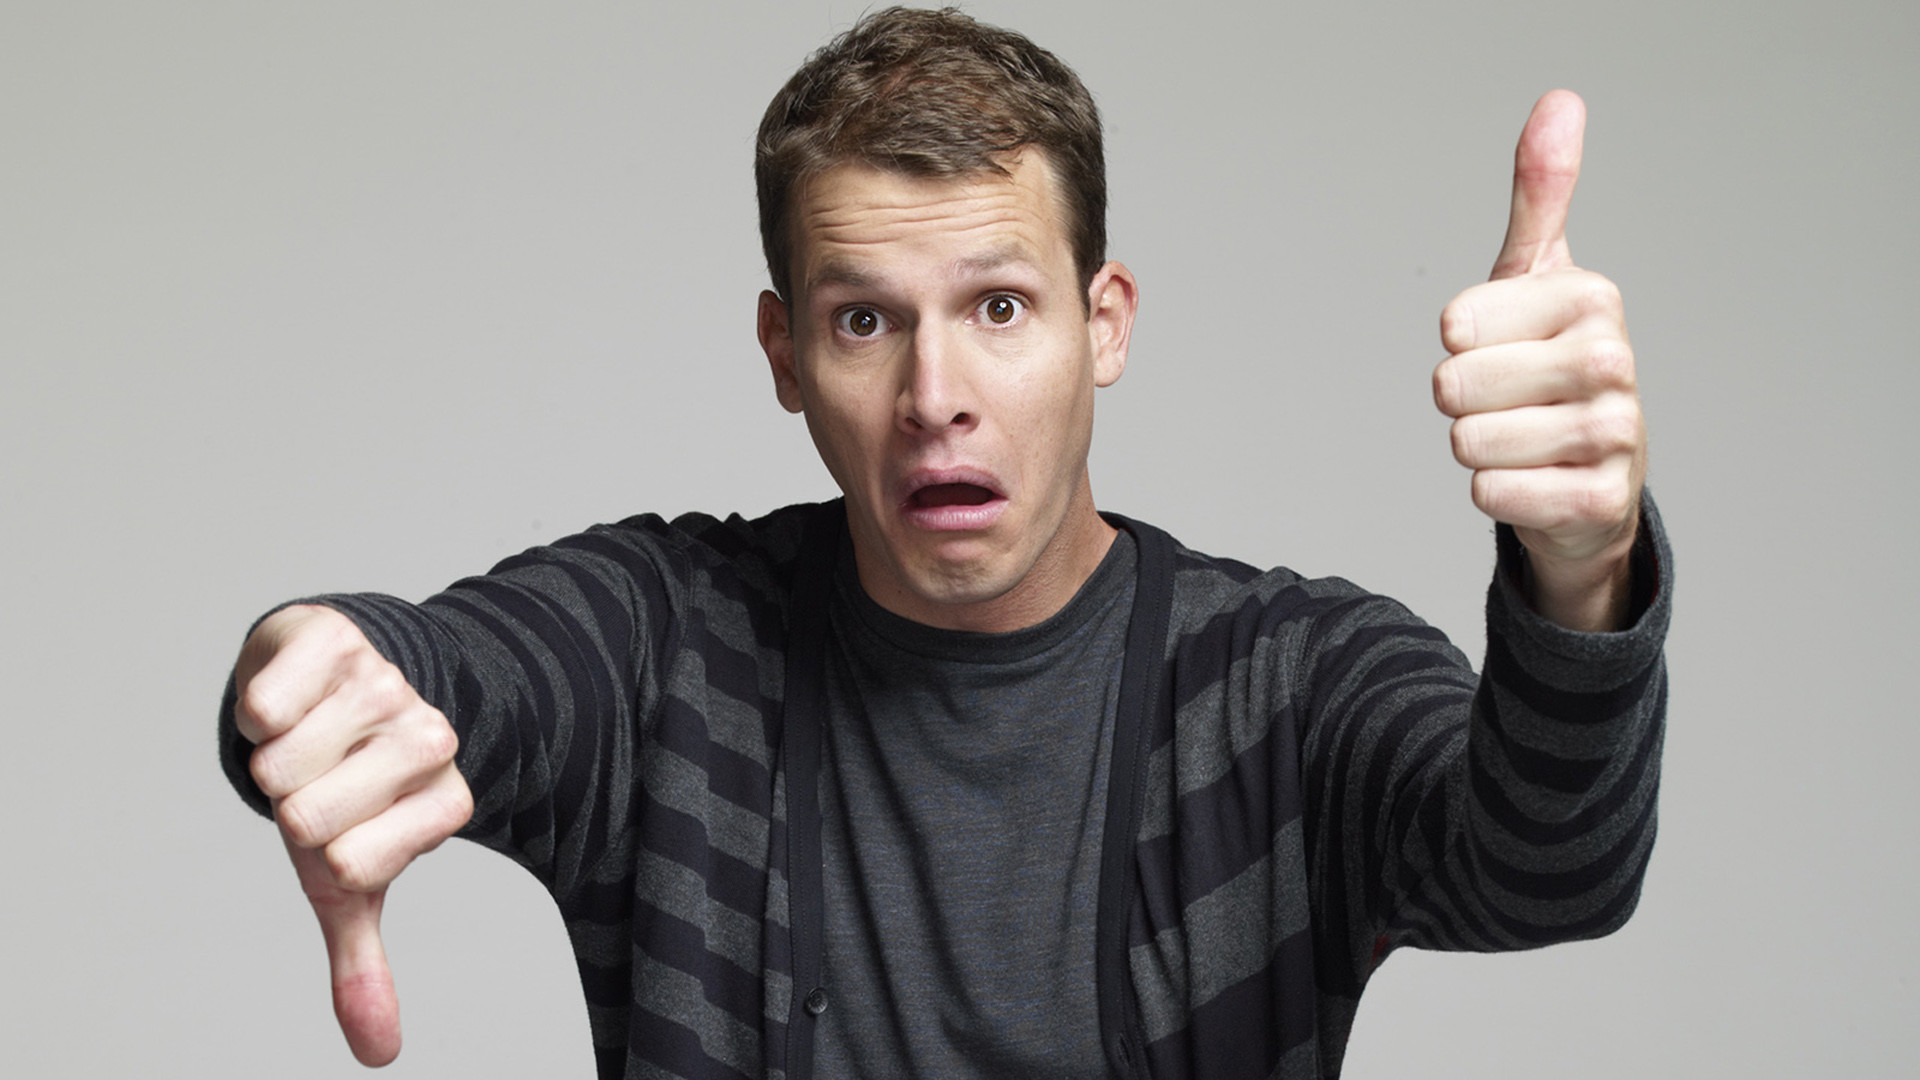 Tosh 0 S11e11 Stevewilldoit Summary Season 11 Episode 11 Guide I get that it's staged but having known. season 11 episode 11